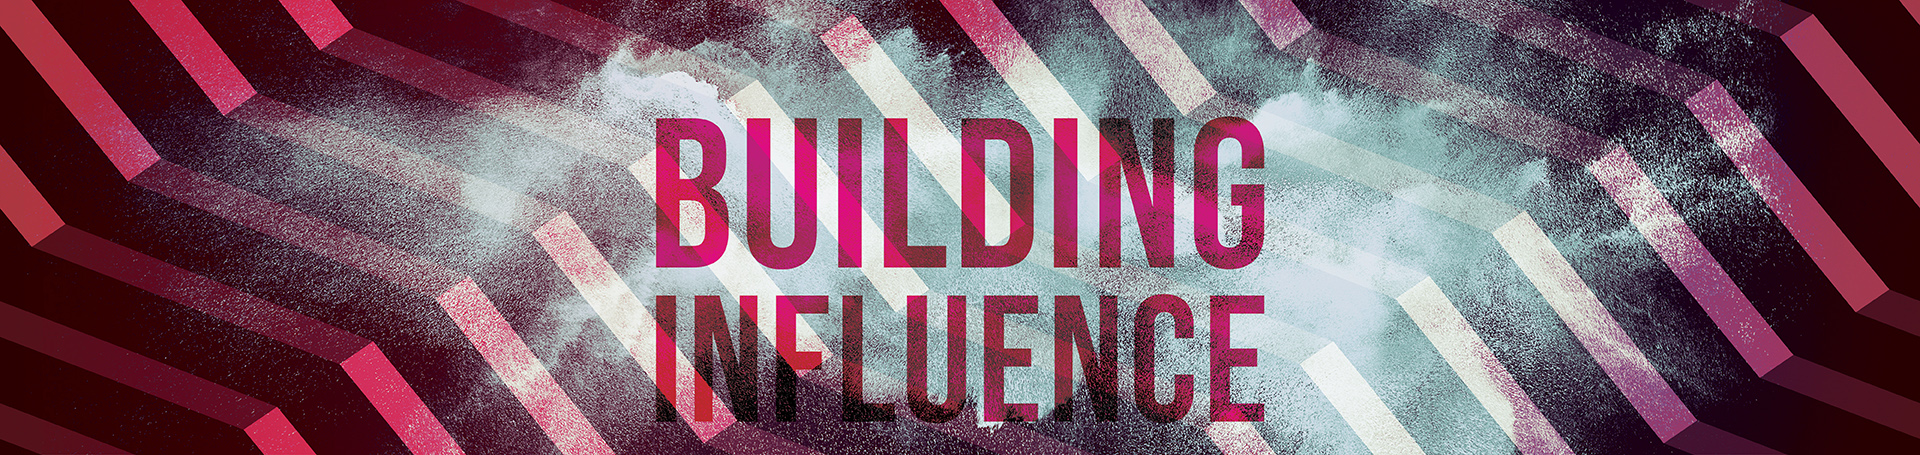 Building Influence